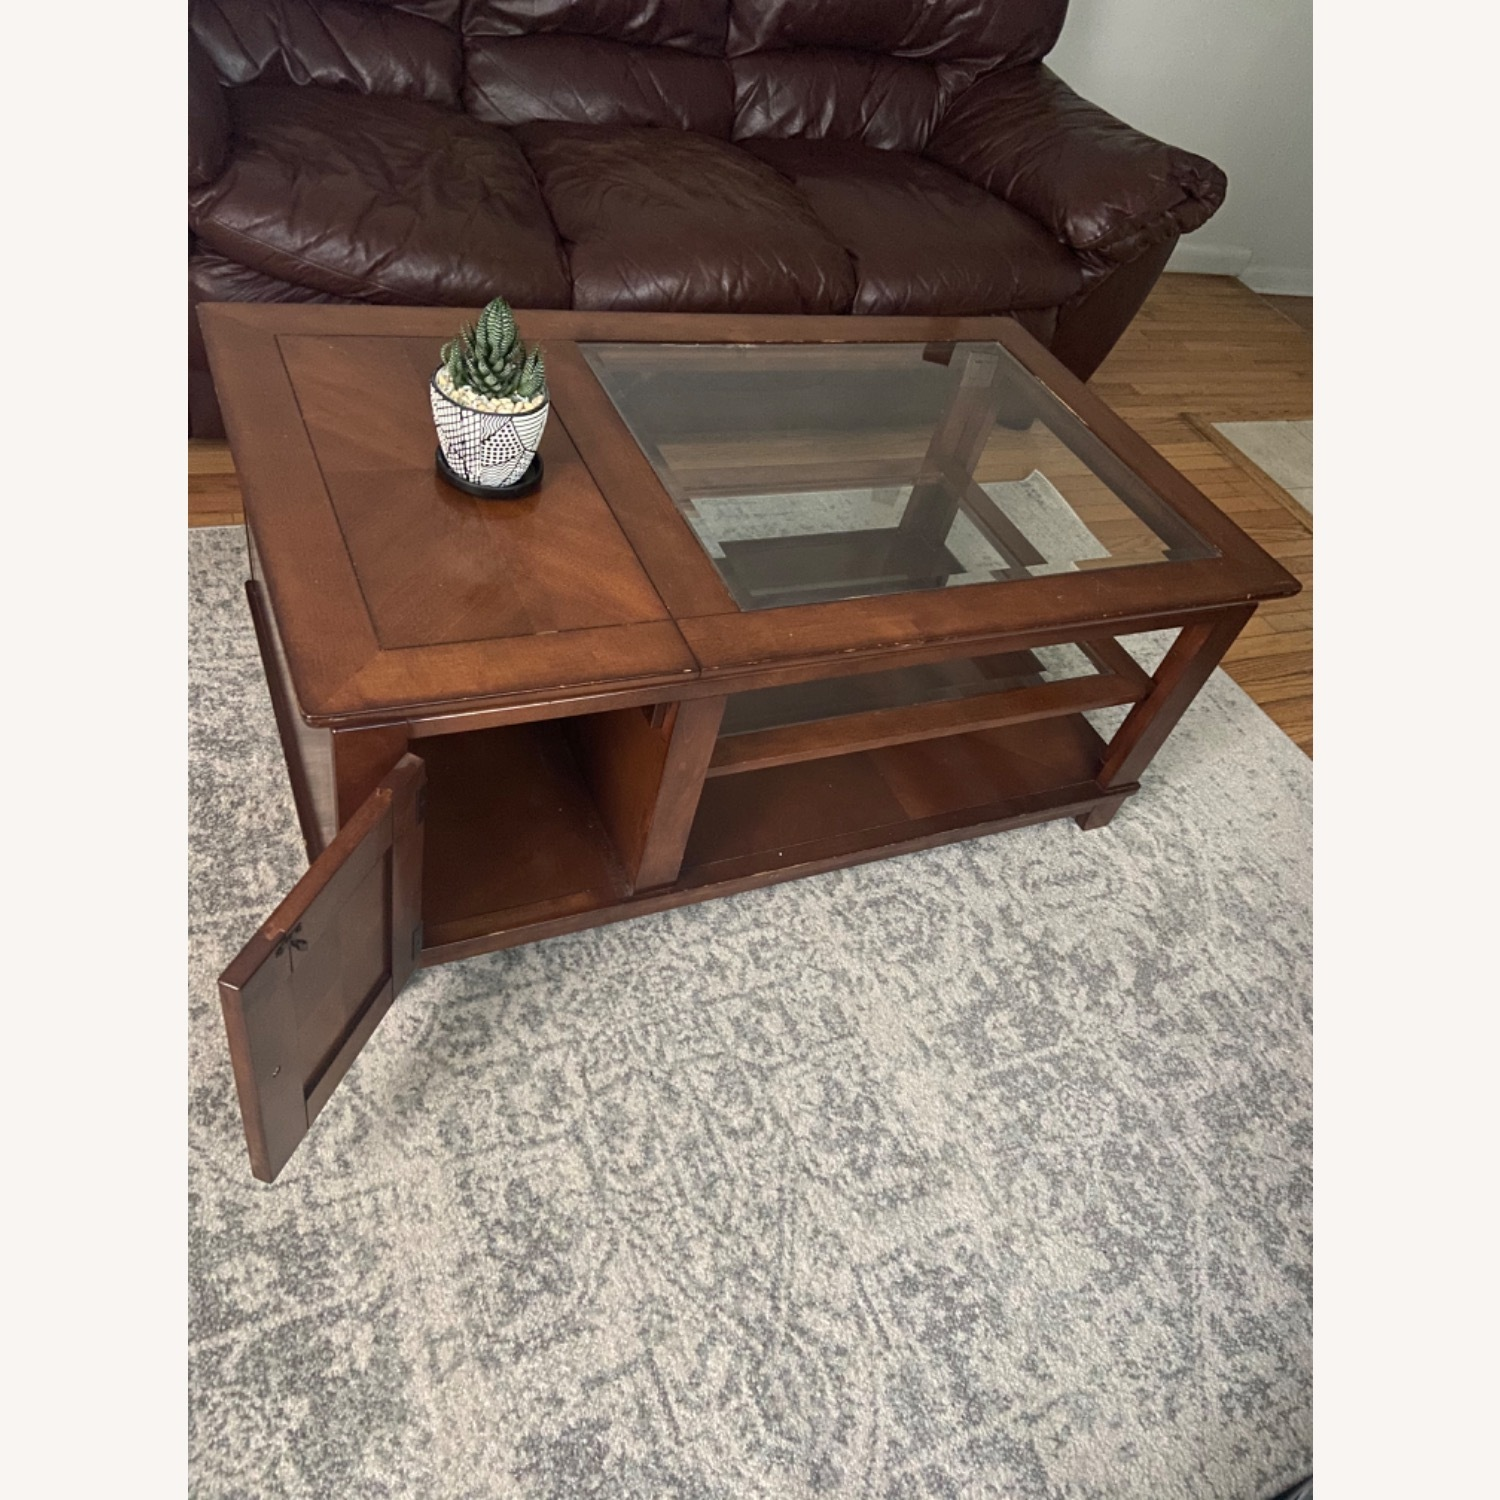 Brown Wooden Coffee Table with Glass Shelves - image-2